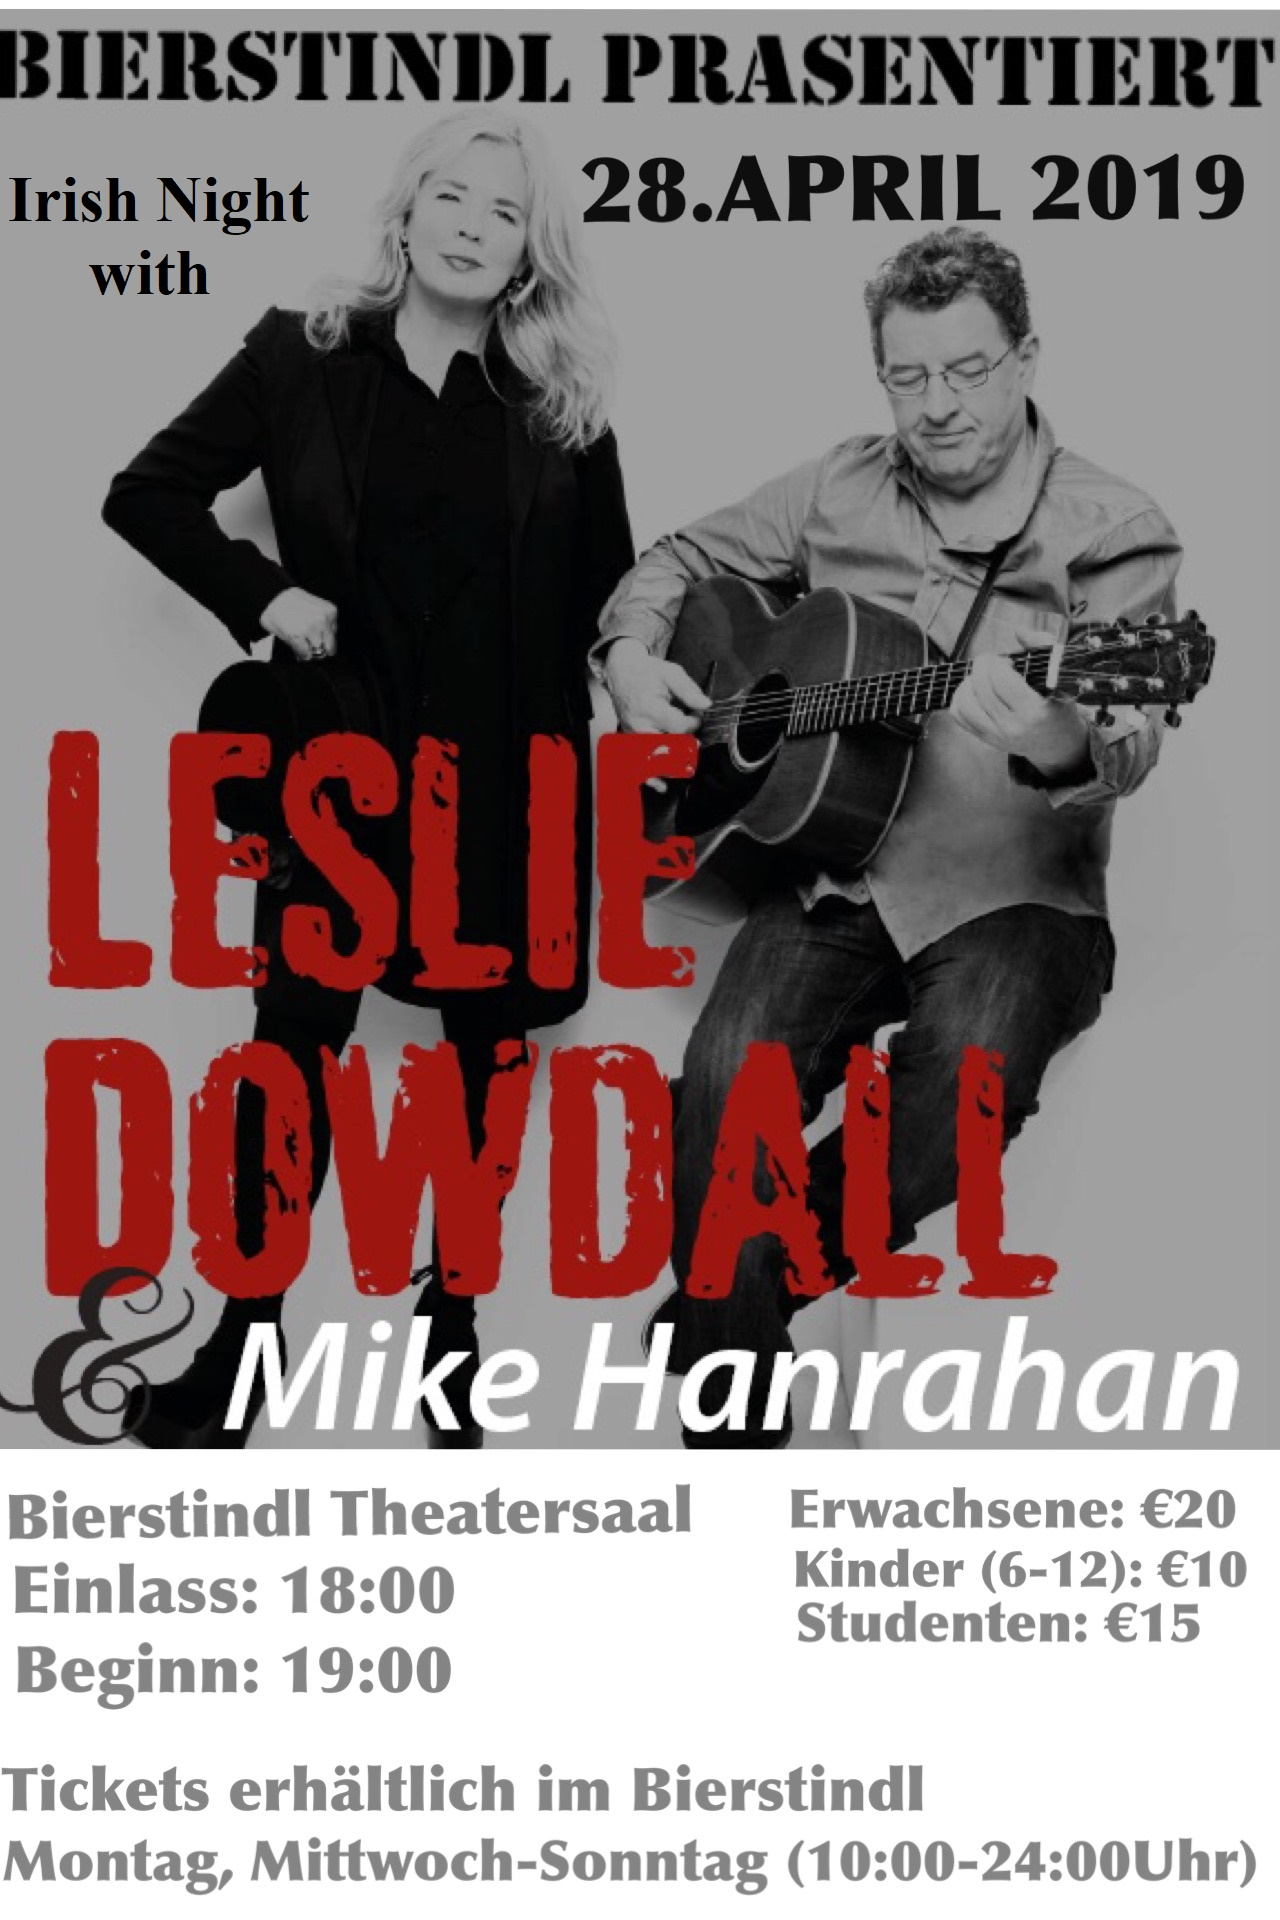 Irish Night with Leslie Dowdall and Mike Hanrahan